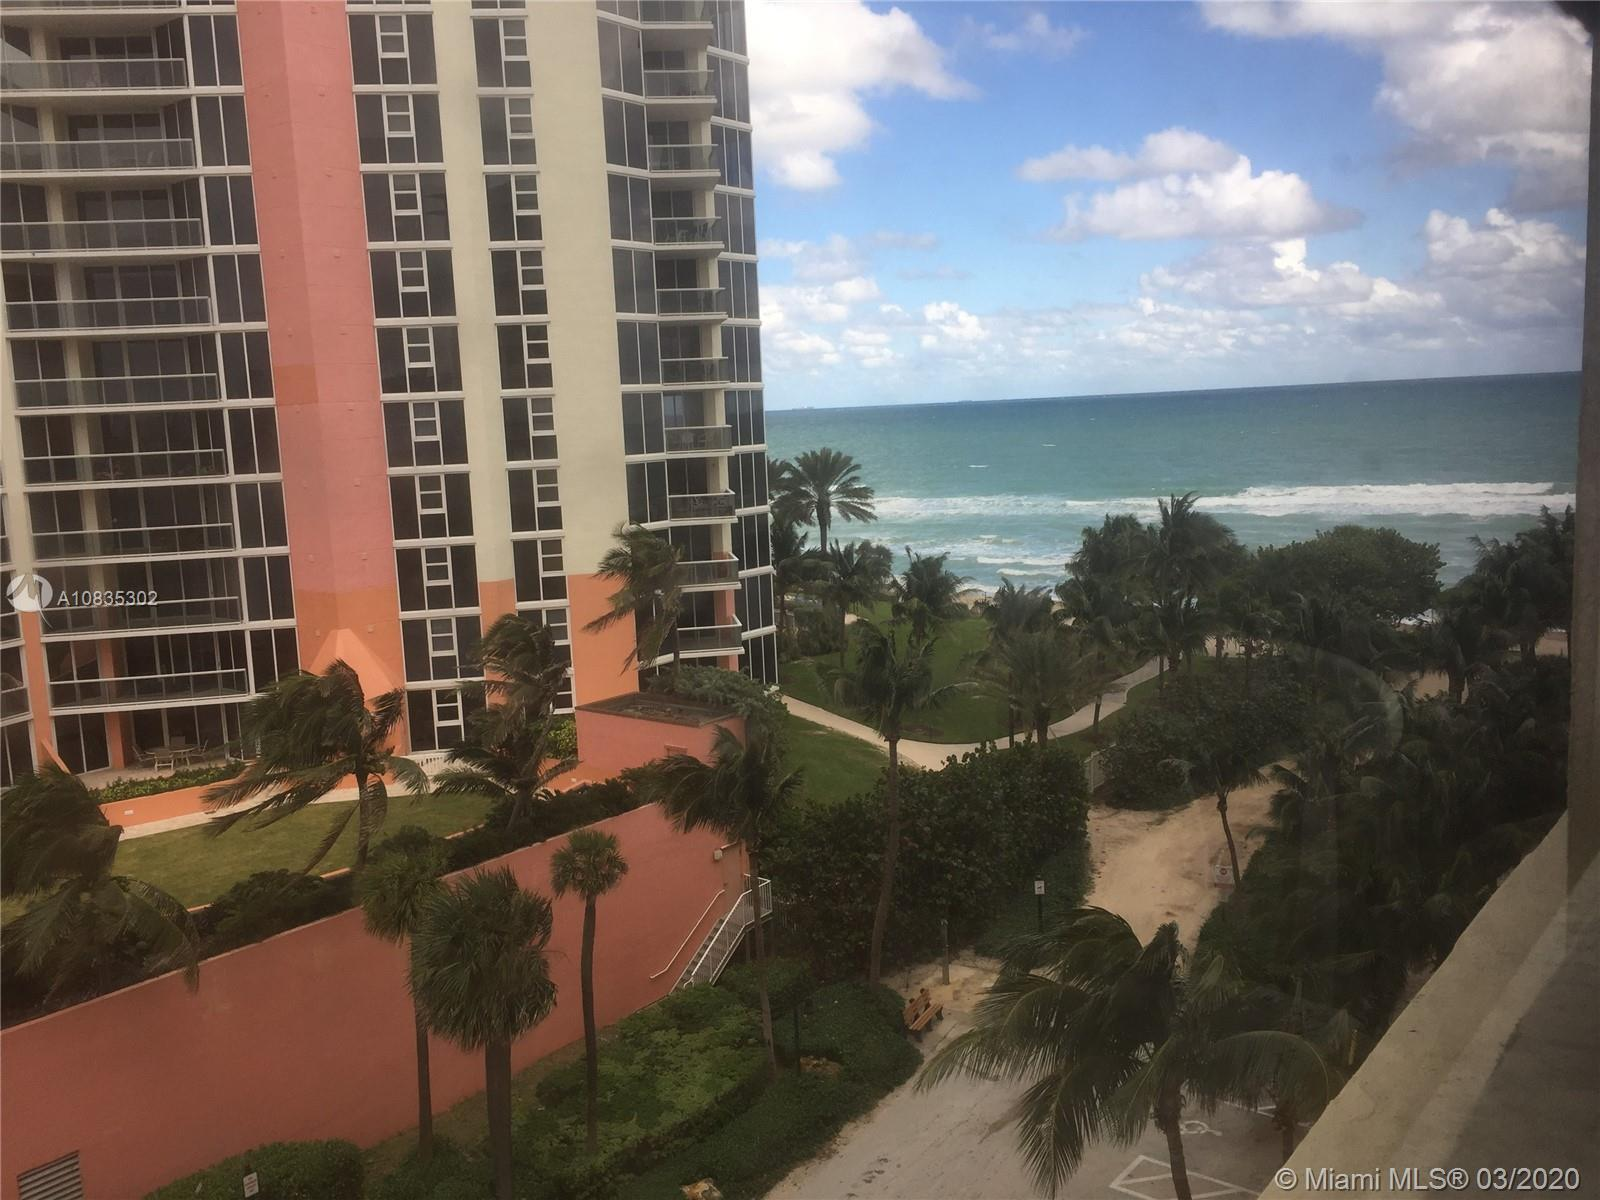 Studio in a oceanfront building, all amenities Pool bar Gym valet , Unit is not in the hotel program